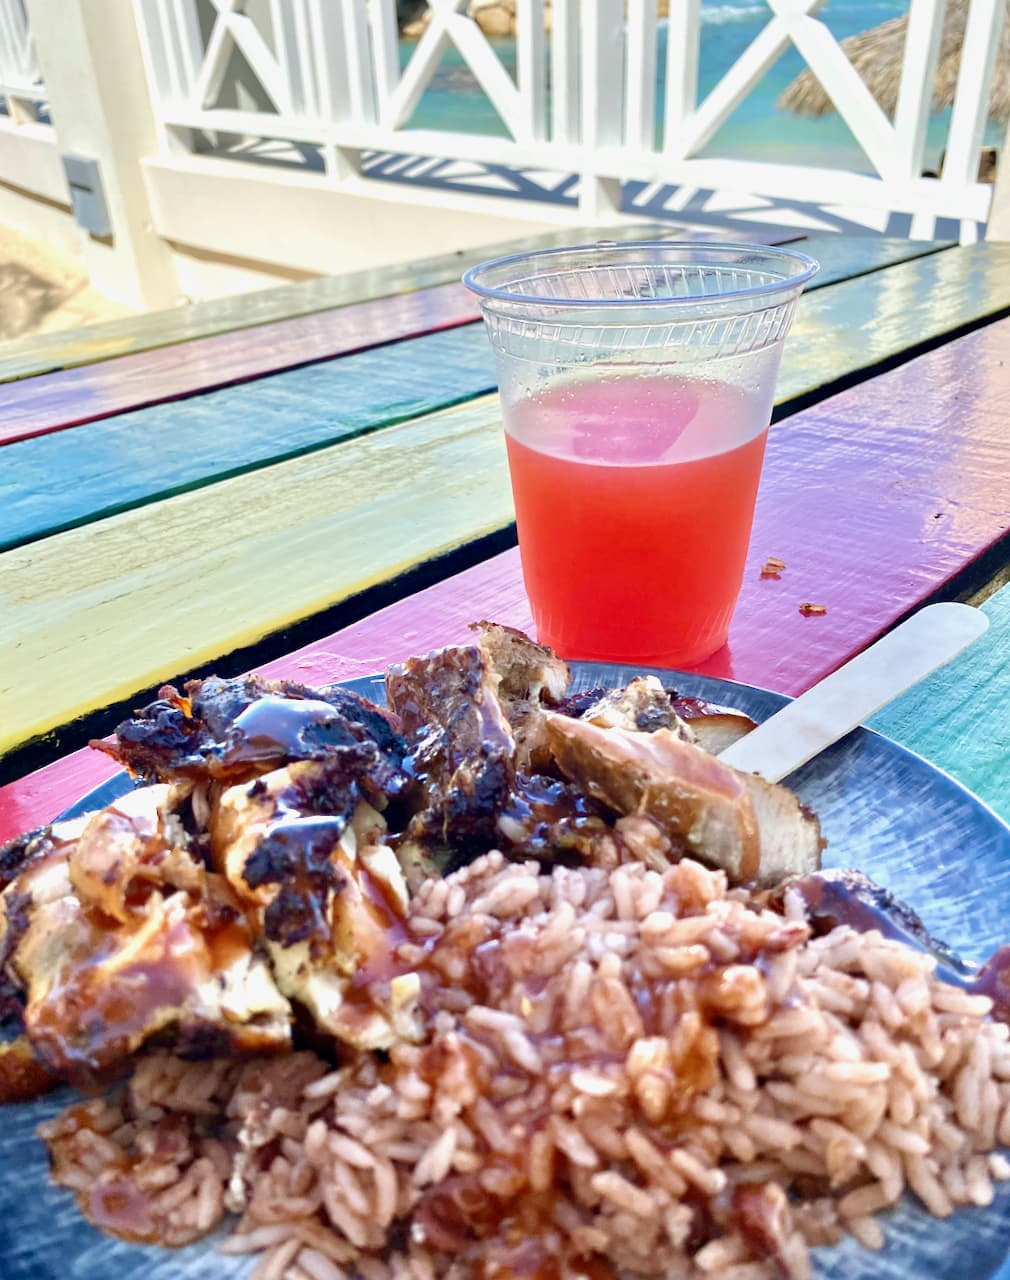 jerk chicken and rice in Jamaica